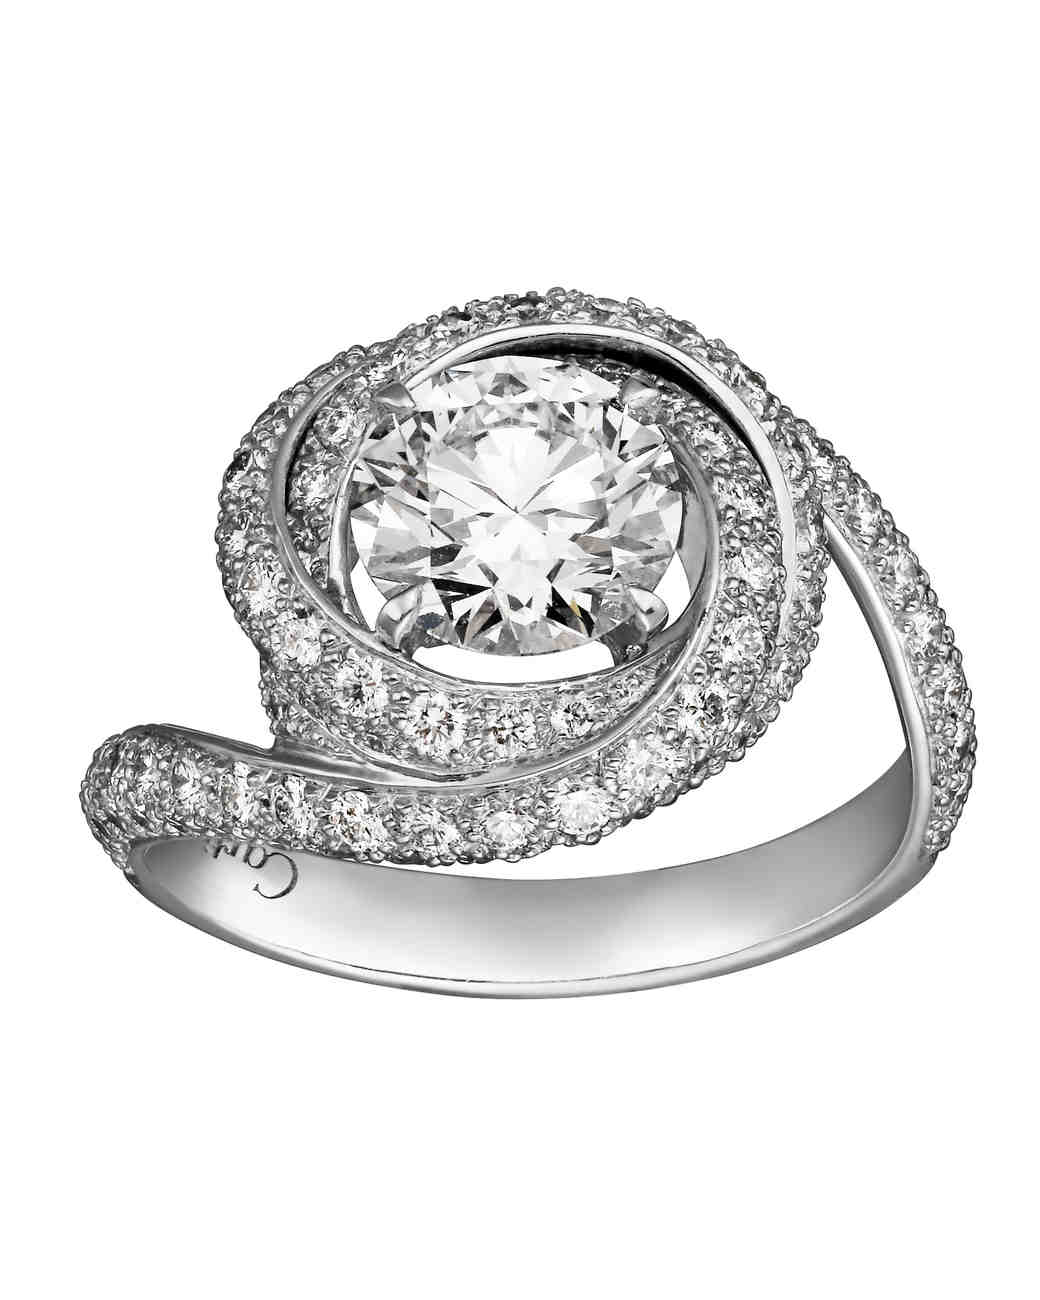 Cartier vintage-inspired trinity engagement ring